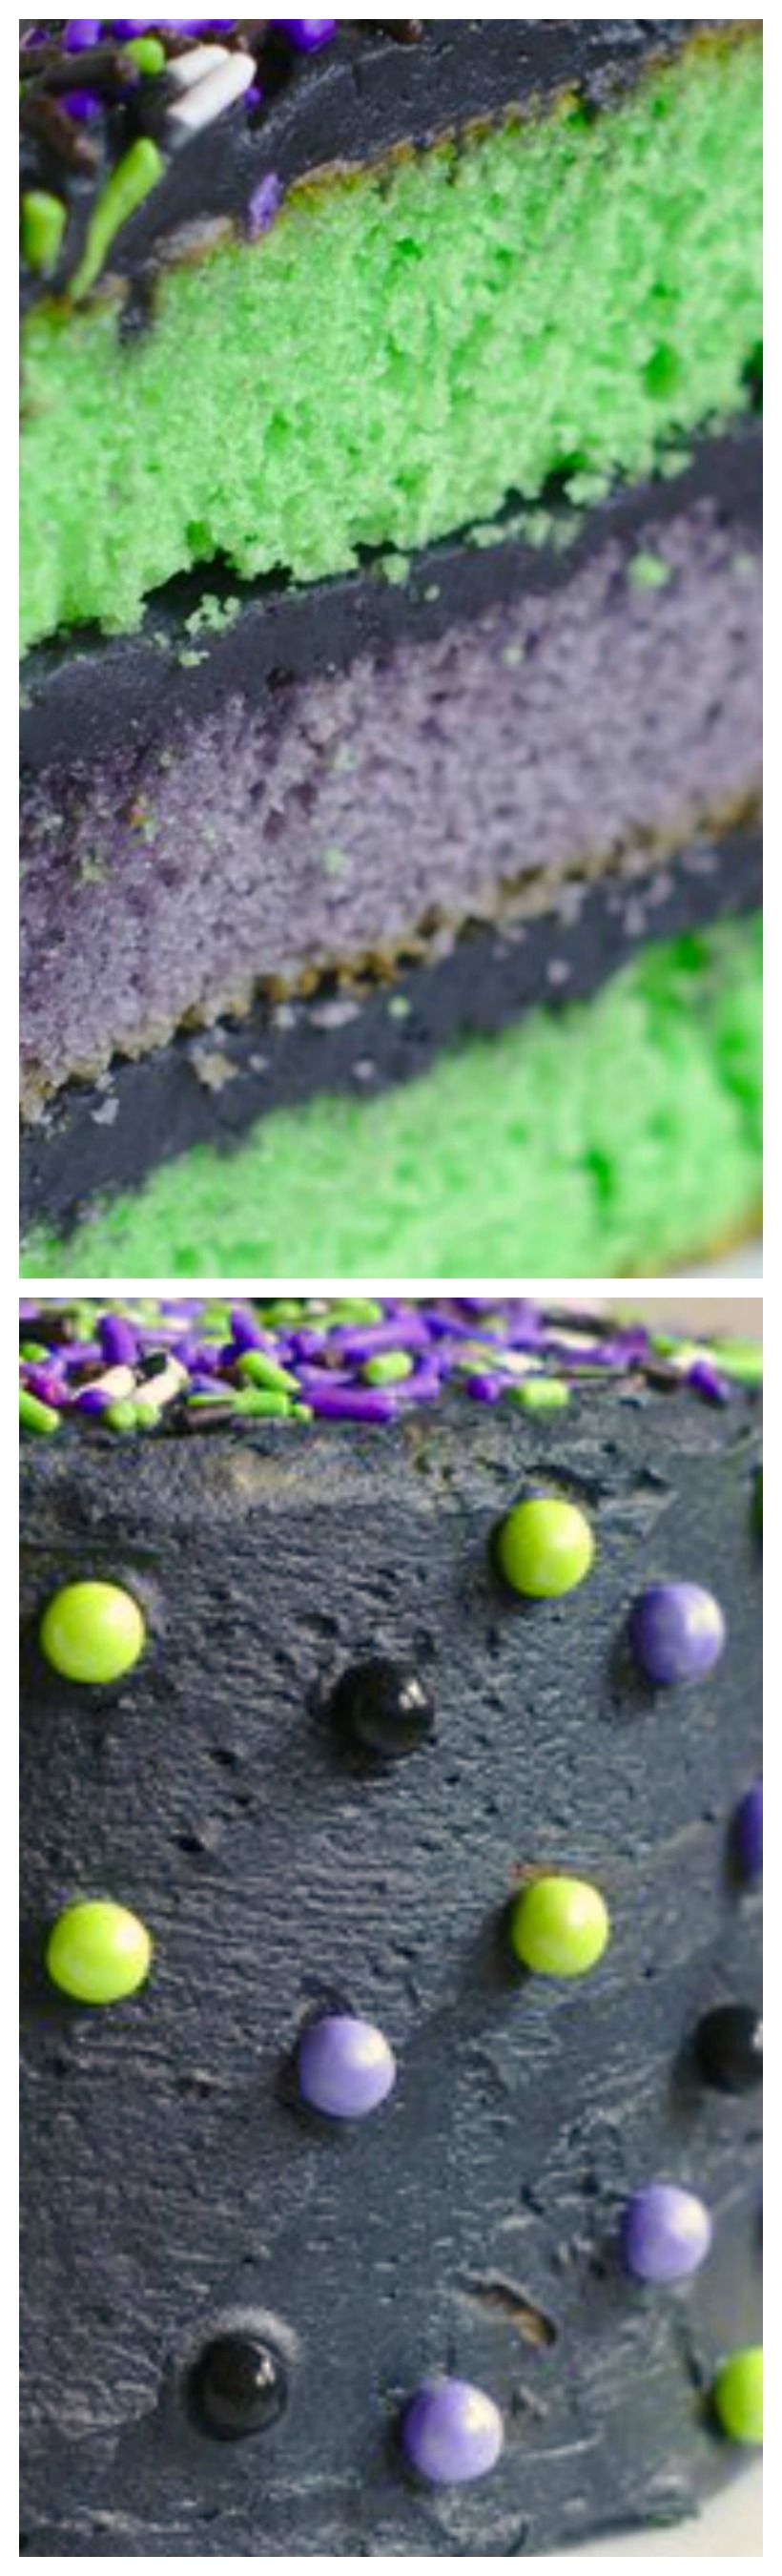 Halloween monster mash cake recipe with images